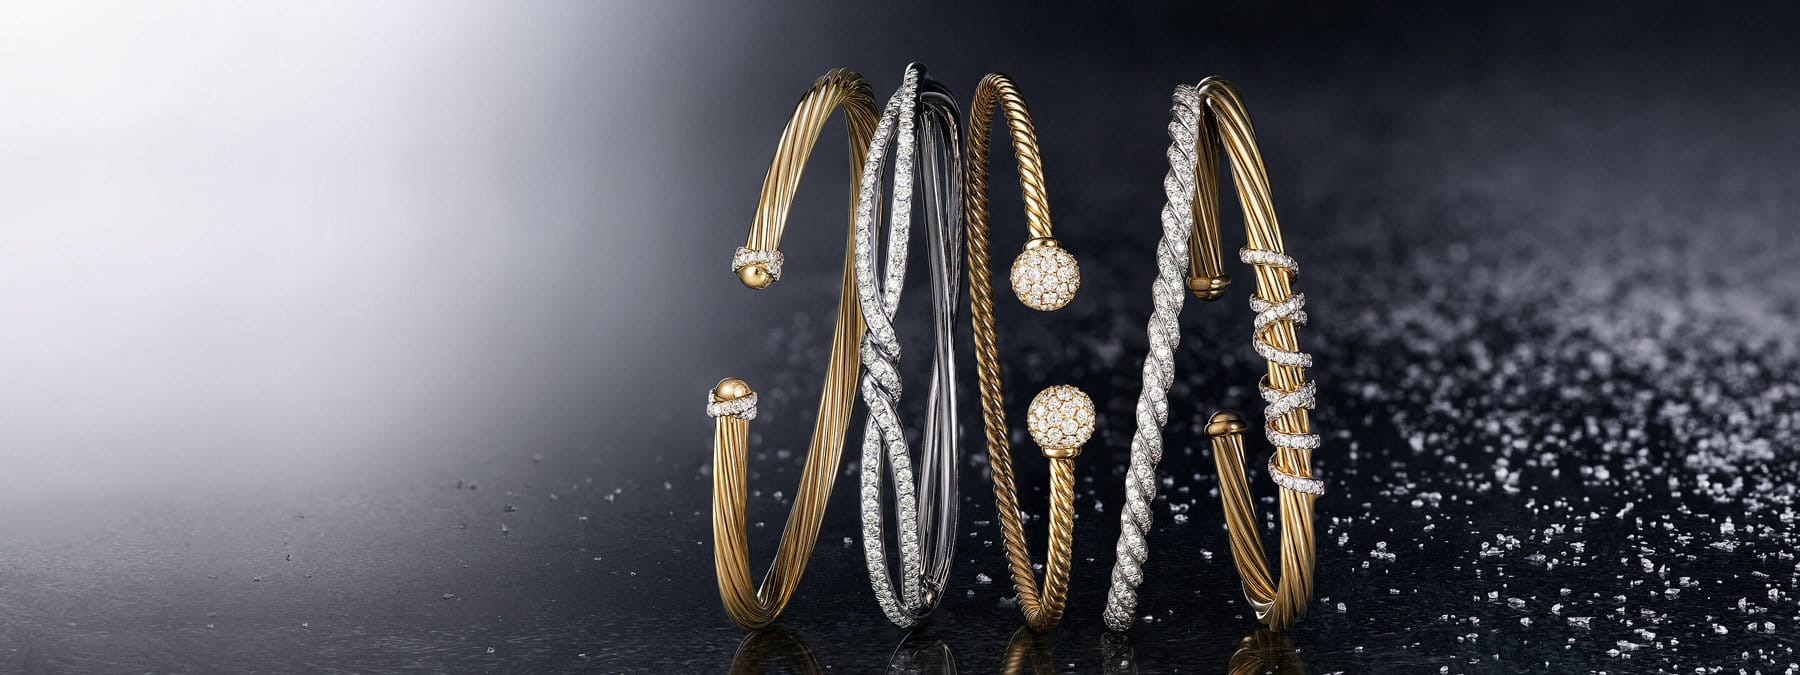 A color photo shows a horizontal stack of five David Yurman bracelets from the Helena, Continuance, Solari and Pavéflex collections leaning against each other on a black surface lightly dusted with snowflakes. Three of the women's bracelets are crafted from 18K yellow gold with threads or spheres encrusted with pavé white diamonds. Two of the women's bracelets are crafted from 18K white gold encrusted with pavé white diamonds.